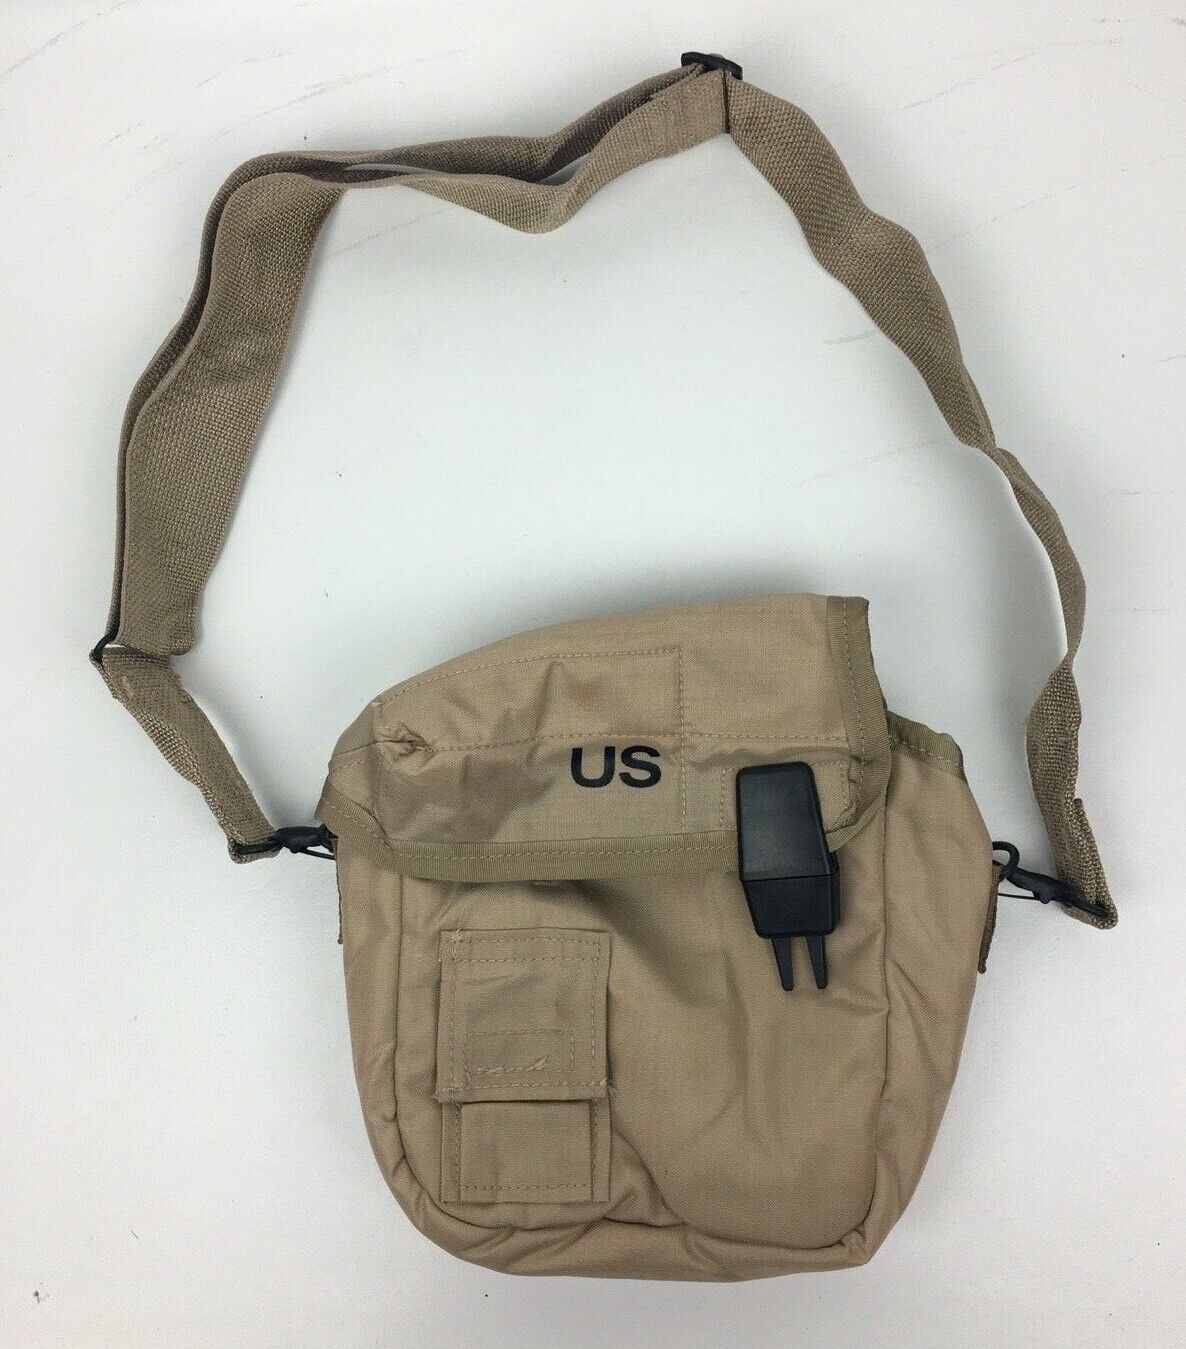 New US Army Military 2 Quart Desert Water Canteen Cover with